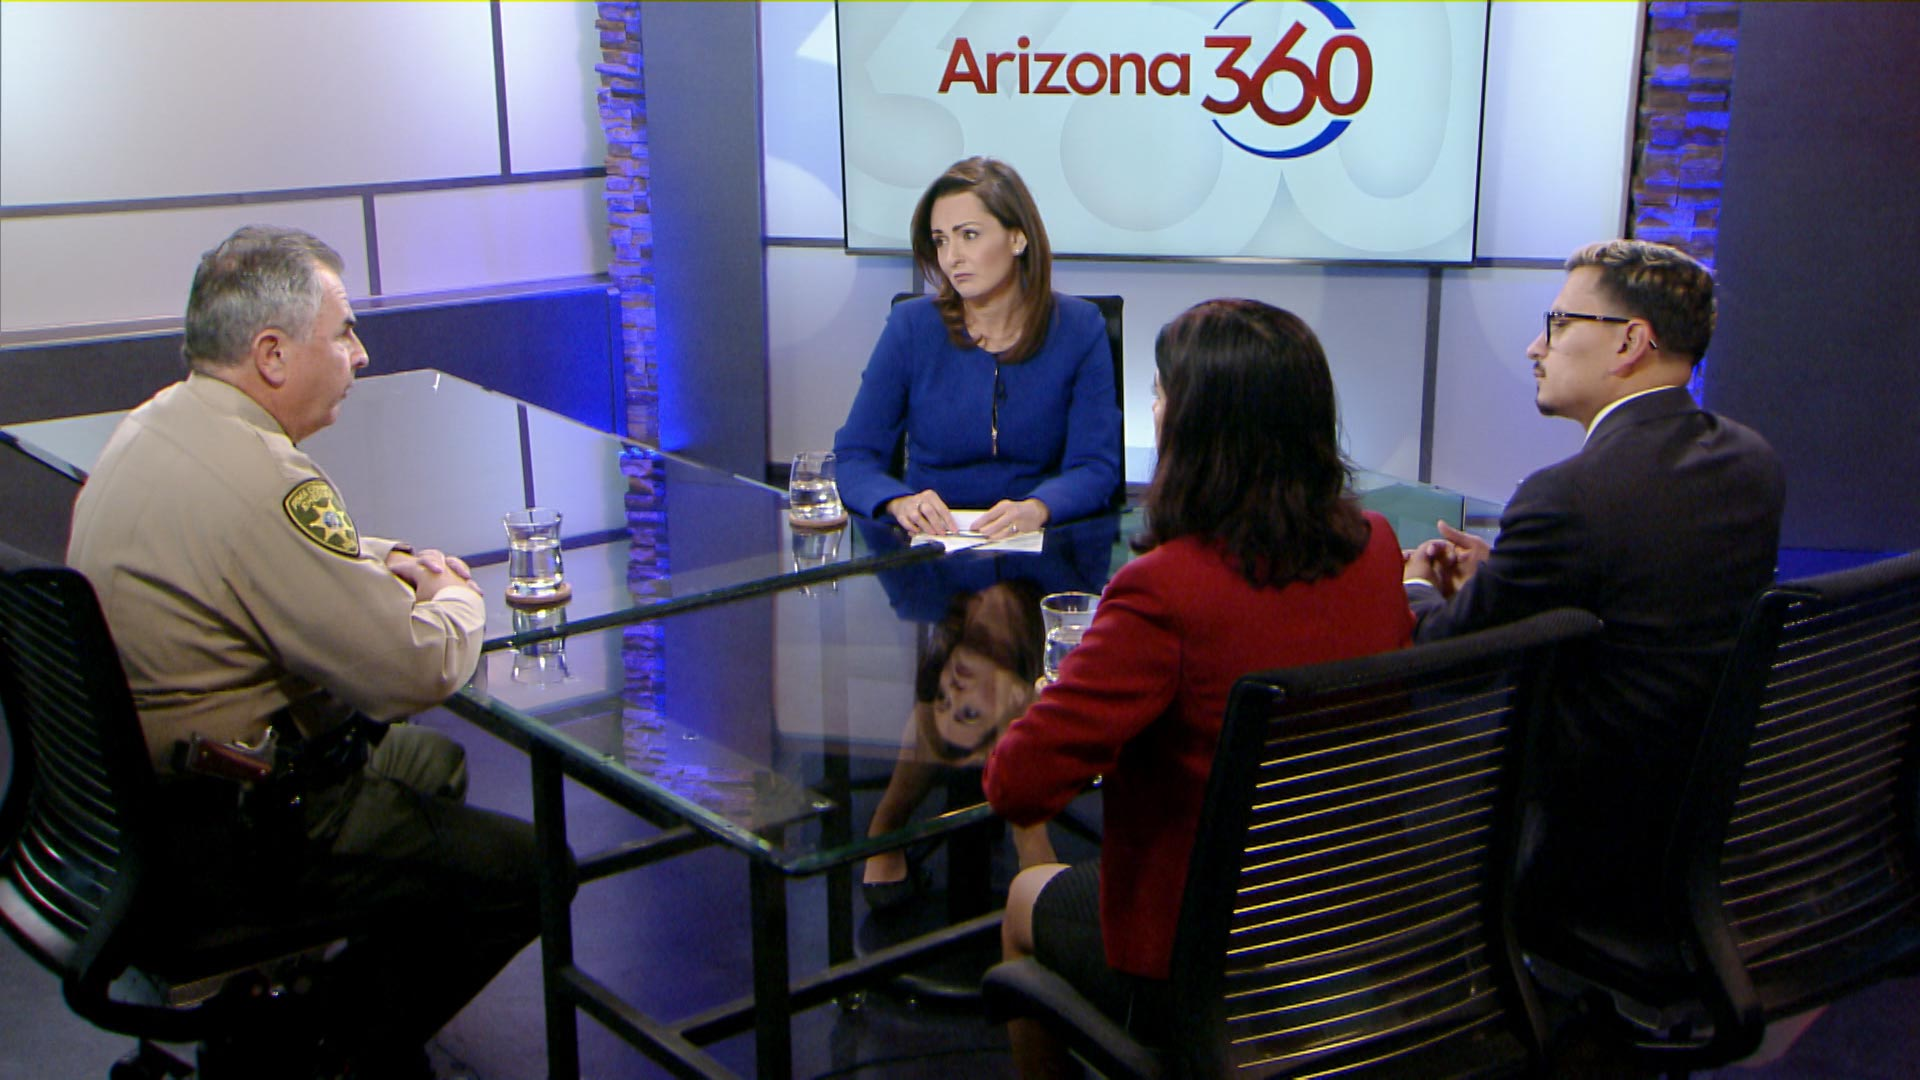 Pima County Sheriff Mark Napier, immigration attorney Patricia Mejia and The Arizona Republic border reporter Rafael Carranza participate in a roundtable discussion led by host Lorraine Rivera about immigration in Southern Arizona.